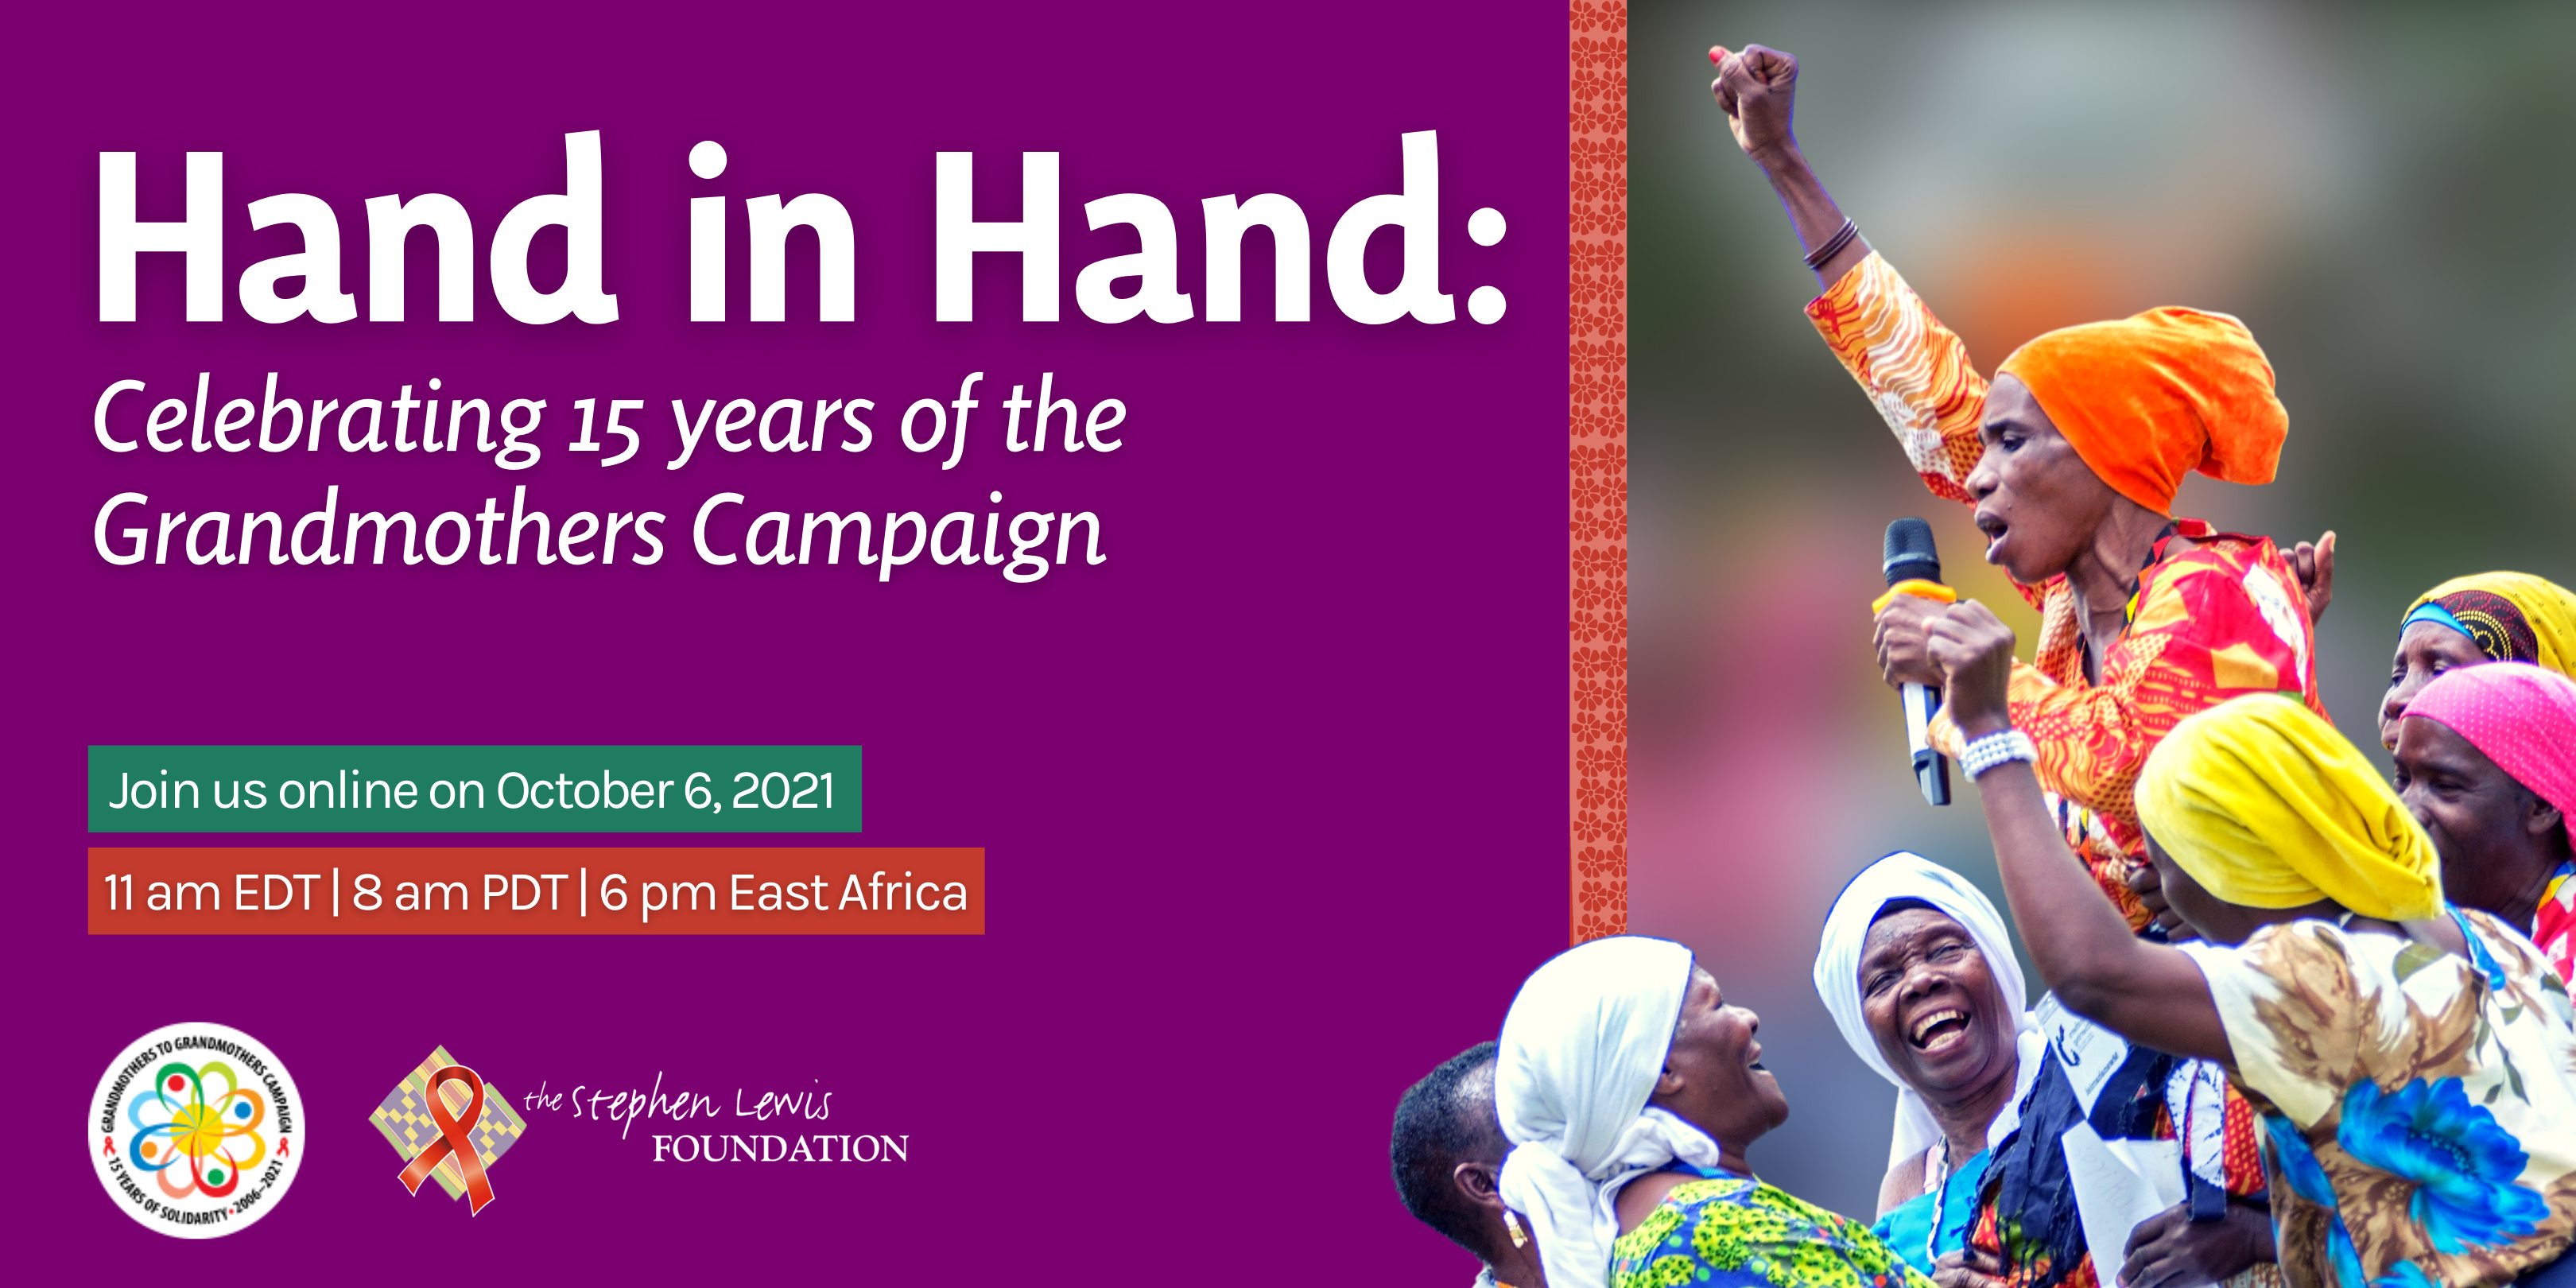 An event poster for the online celebration of the 15th anniversary of the Grandmothers Campaign